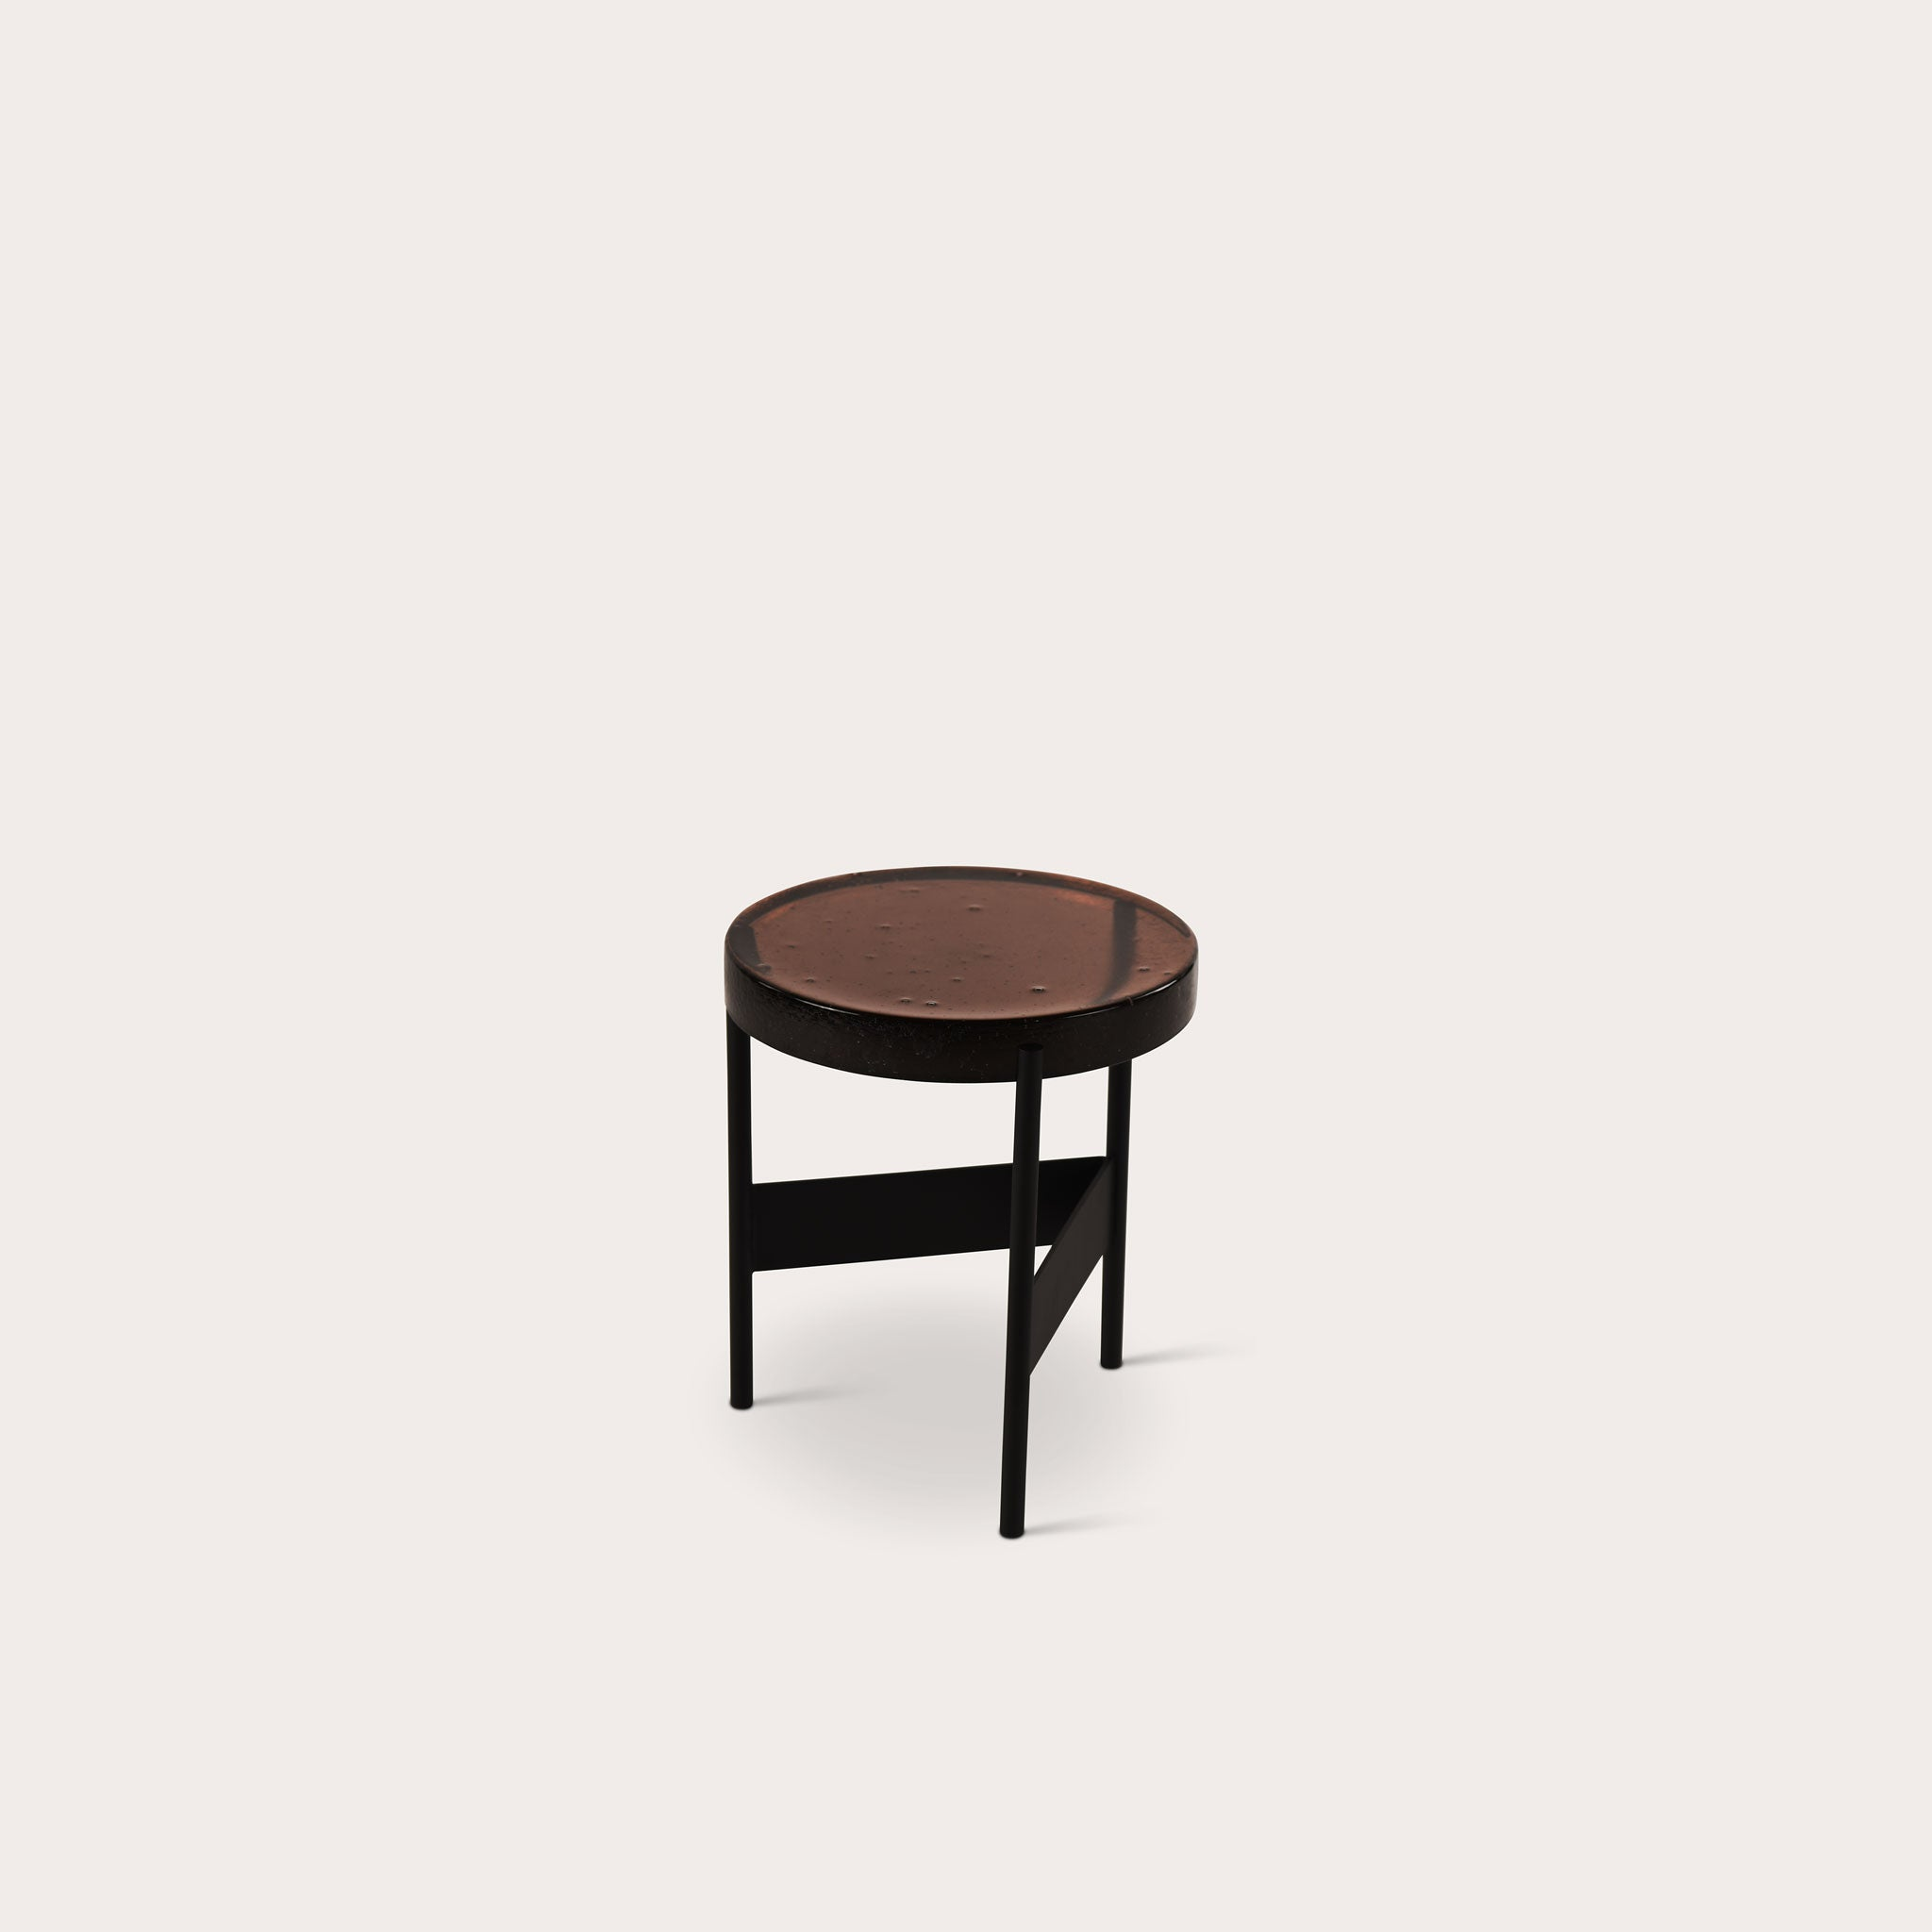 ALWA II Exclusive Tables Sebastian Herkner Designer Furniture Sku: 747-230-10087